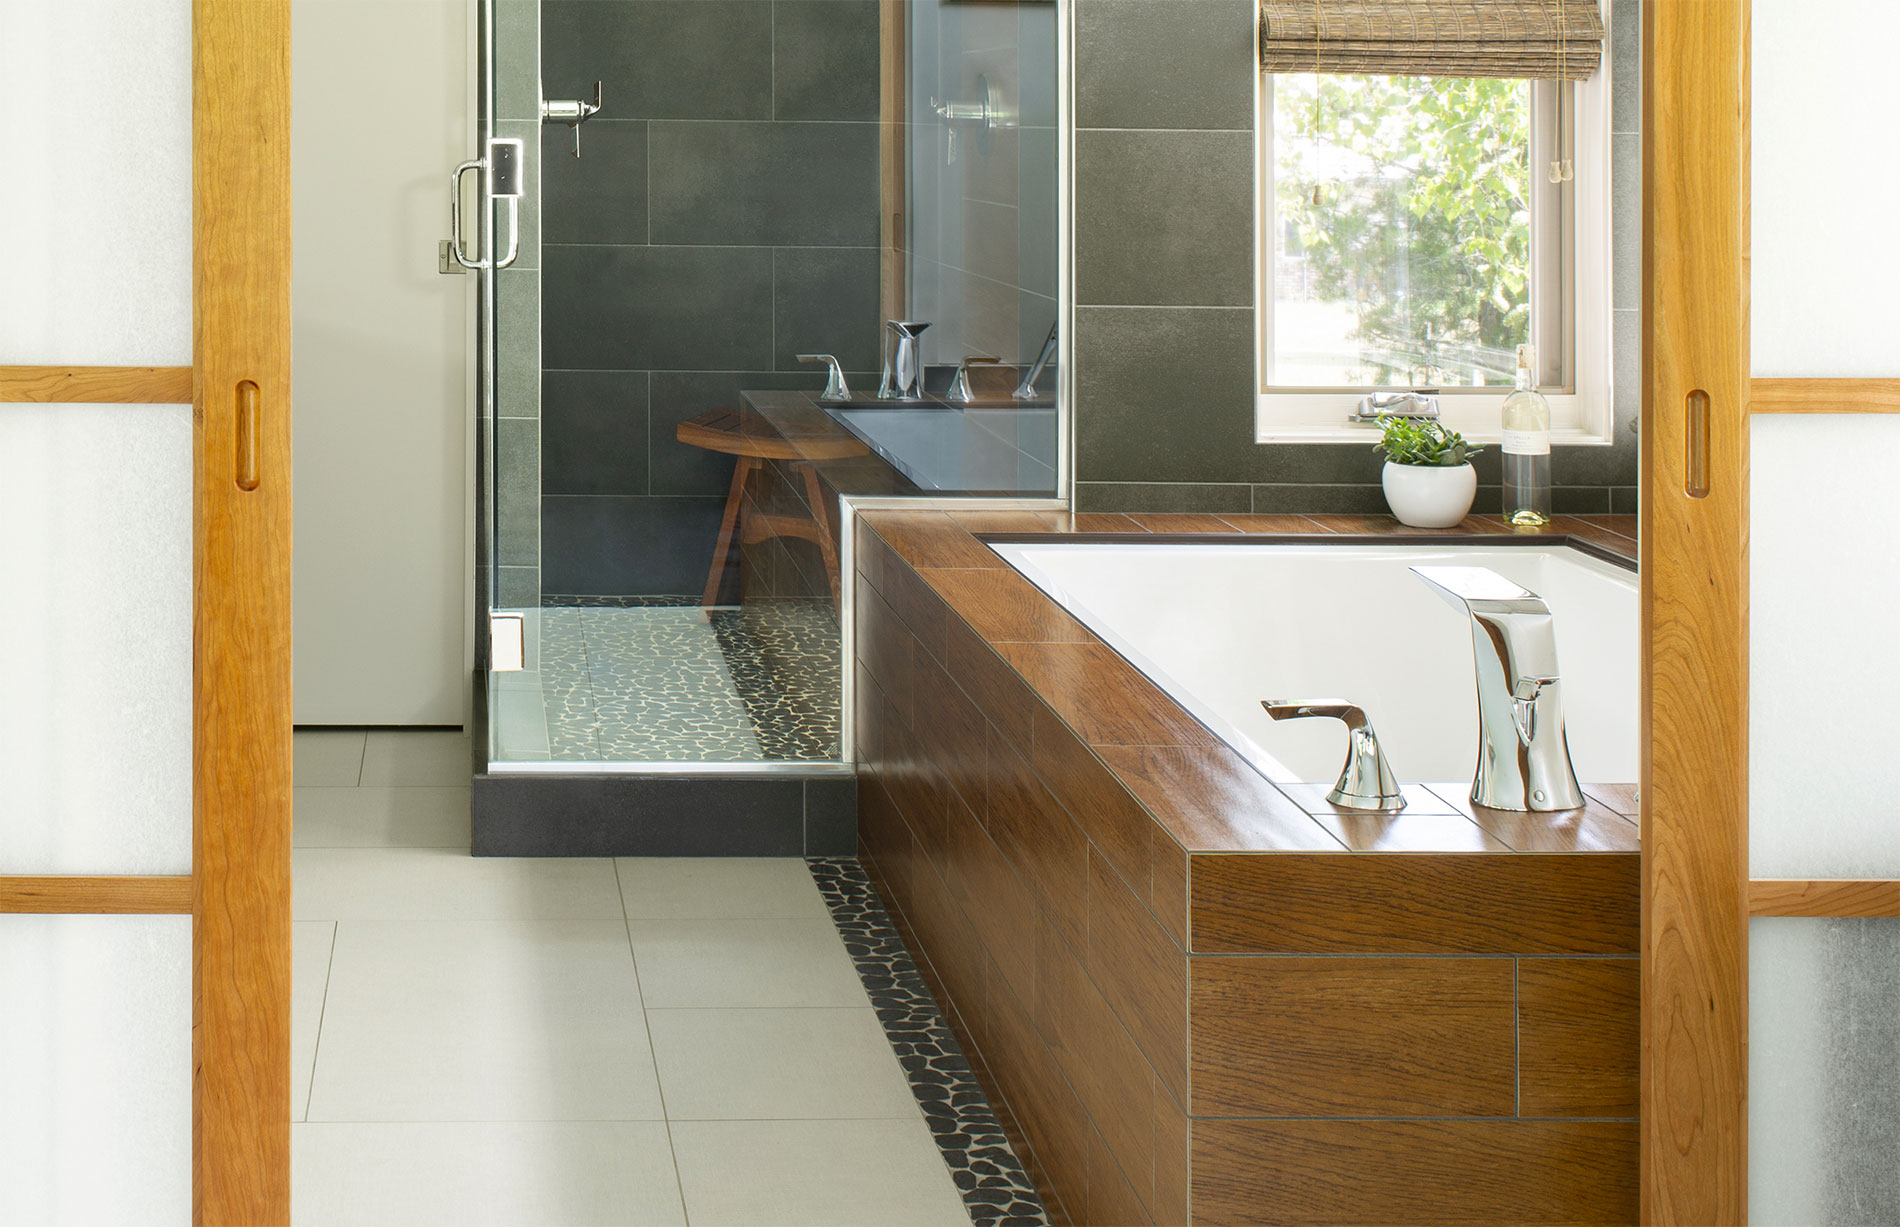 Bathroom remodel designer contractor factor design - Bathroom remodel contractors denver ...